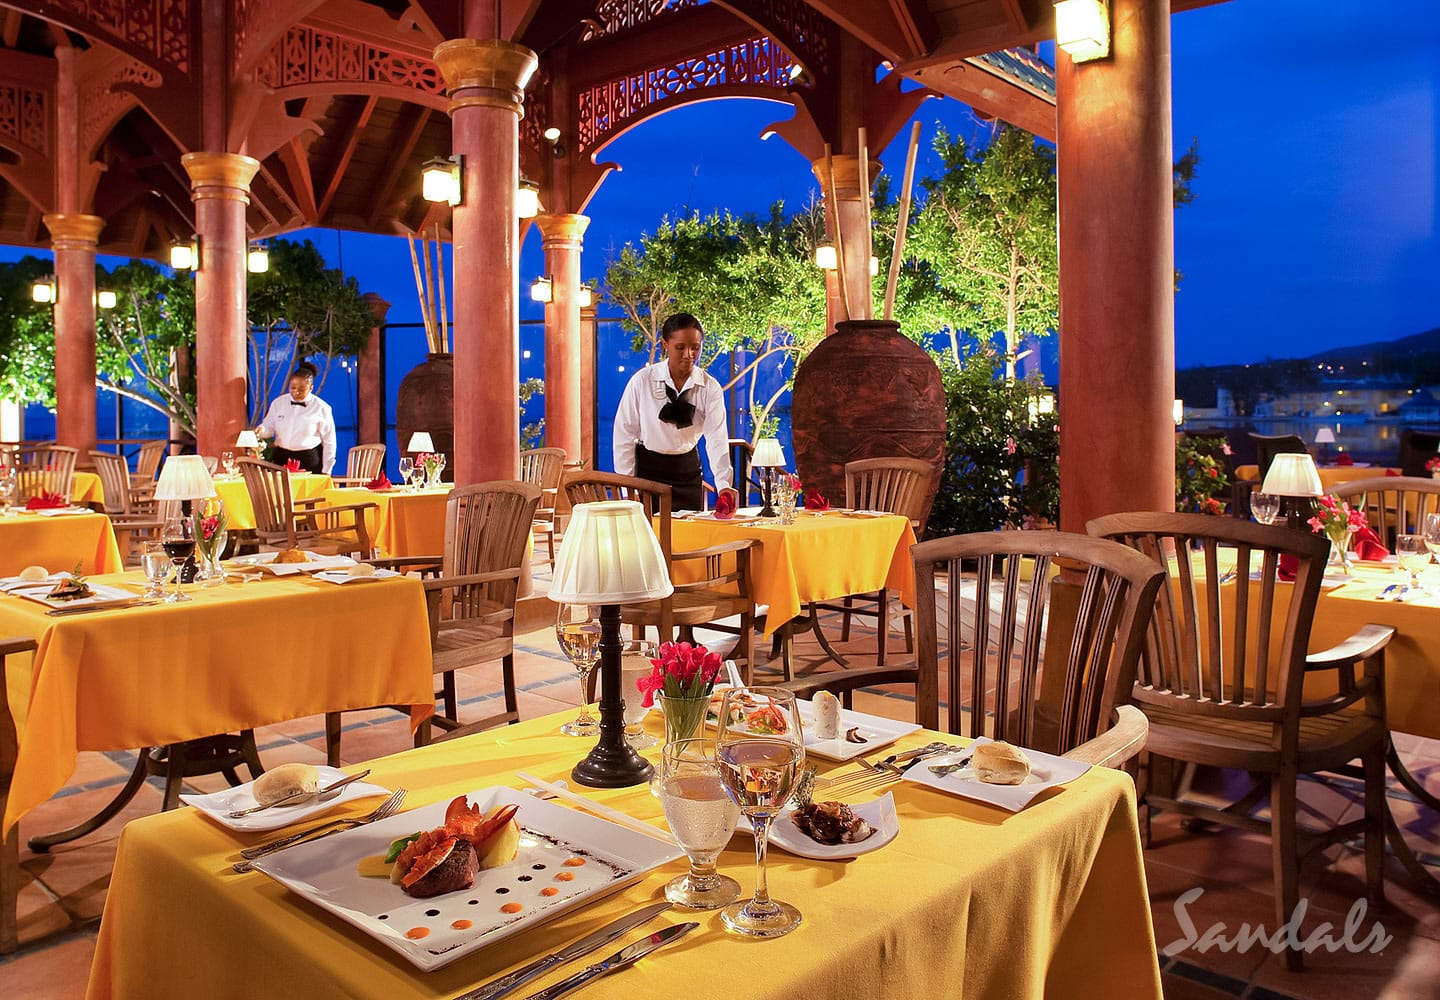 delightful dishes at the restaurants at the Sandals Royal Caribbean resort and private island